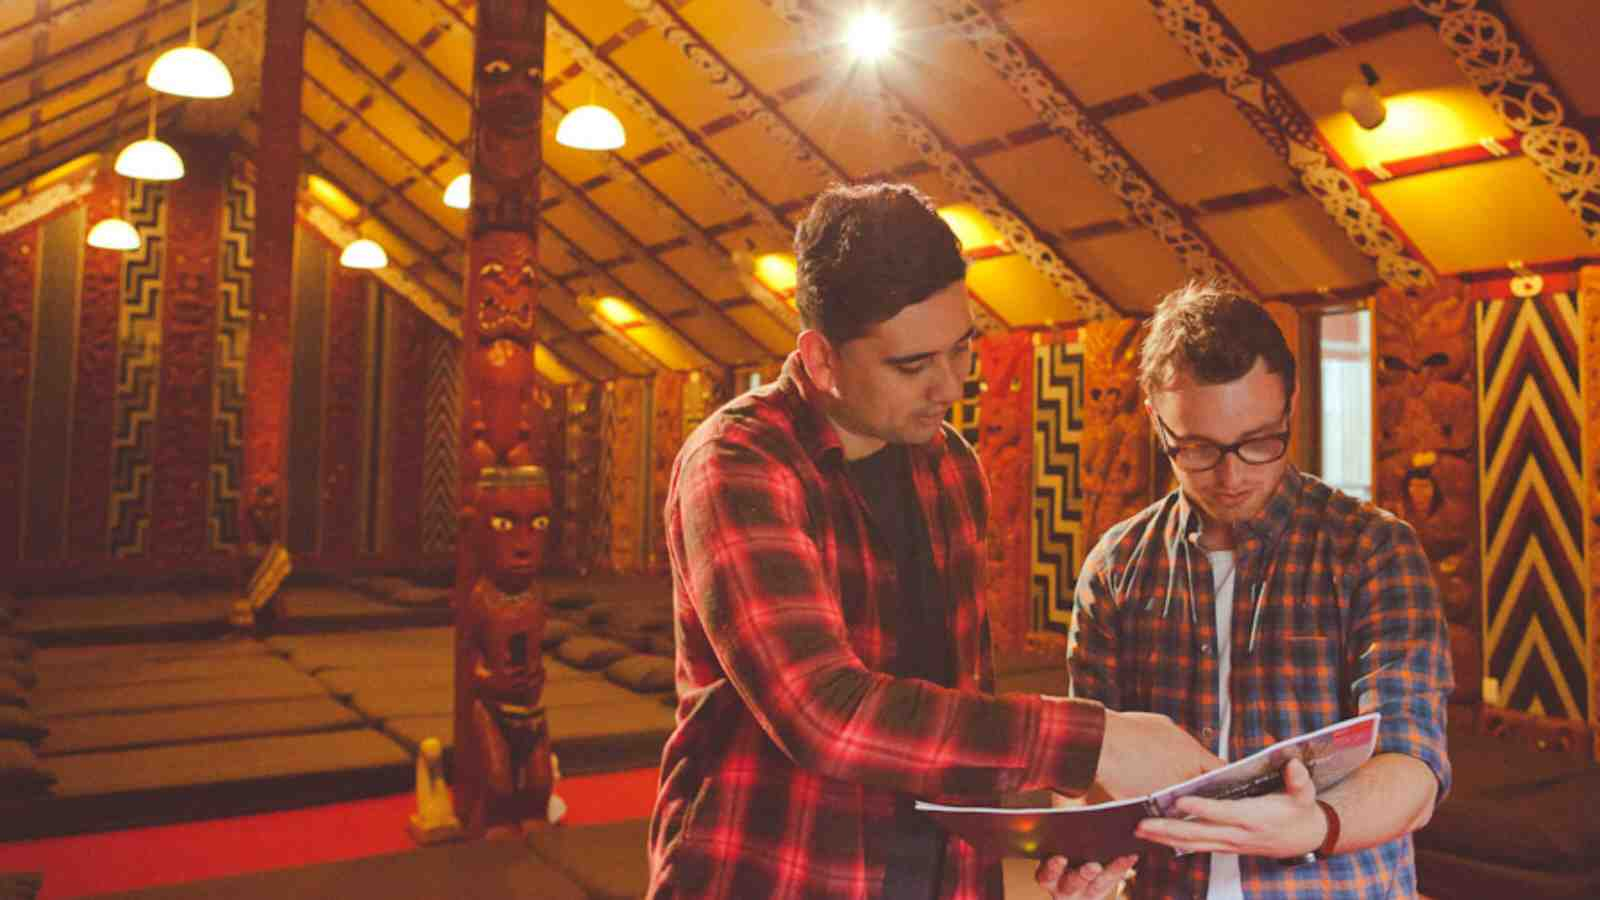 Two students standing in Victoria's Te Herenga Waka Marae and looking at a publication together.